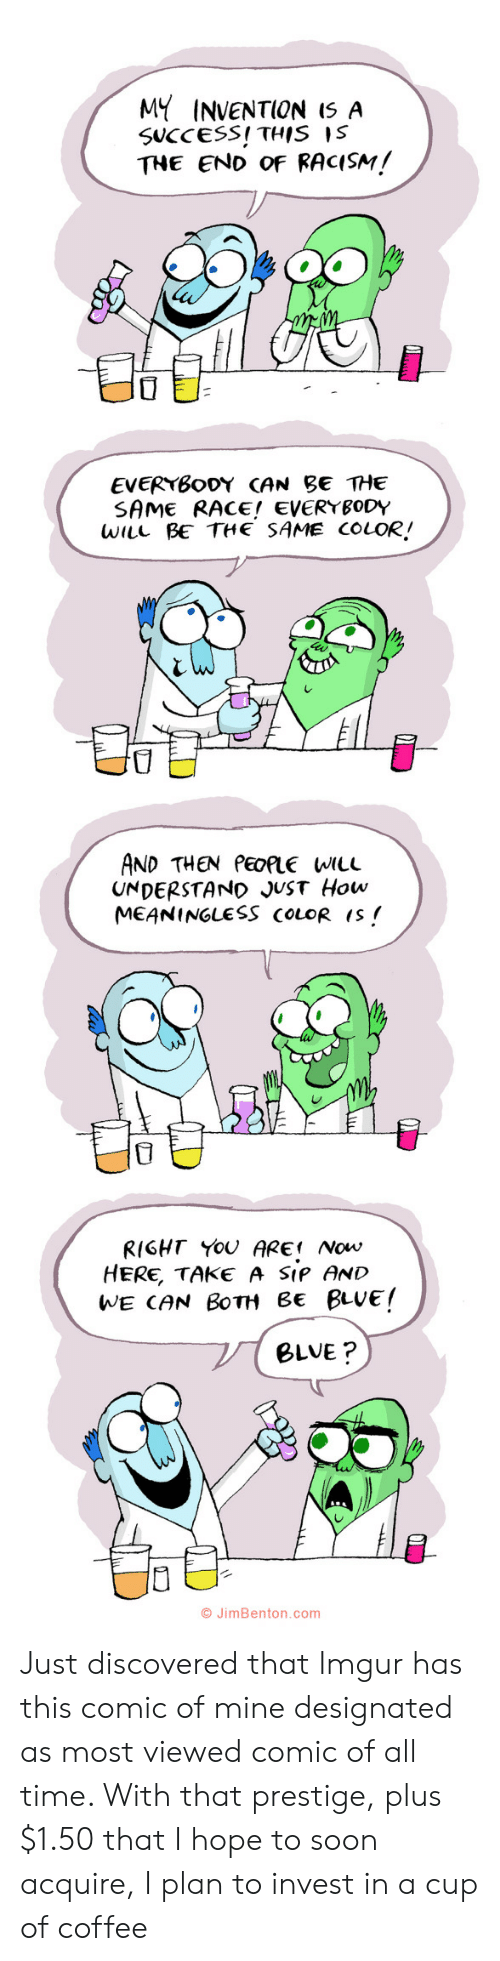 invest: MY INVENTION I5 A  SUCCESS! THIS IS  THE END OF RACISM!  EVERYBODY CAN BE THE  SAME RACE! EVERYBODY  WILL BE THE SAME COLOR!  AND THEN PEOPLE WILL  UNDERSTAND JUST How  MEANINGLESS COLOR IS  RIGHT YOU ARE Now  HERE, TAKE A SIP AND  WE CAN BOTH Be BLUE!  BLVE?  O JimBenton.com  י Just discovered that Imgur has this comic of mine designated as most viewed comic of all time. With that prestige, plus $1.50 that I hope to soon acquire, I plan to invest in a cup of coffee